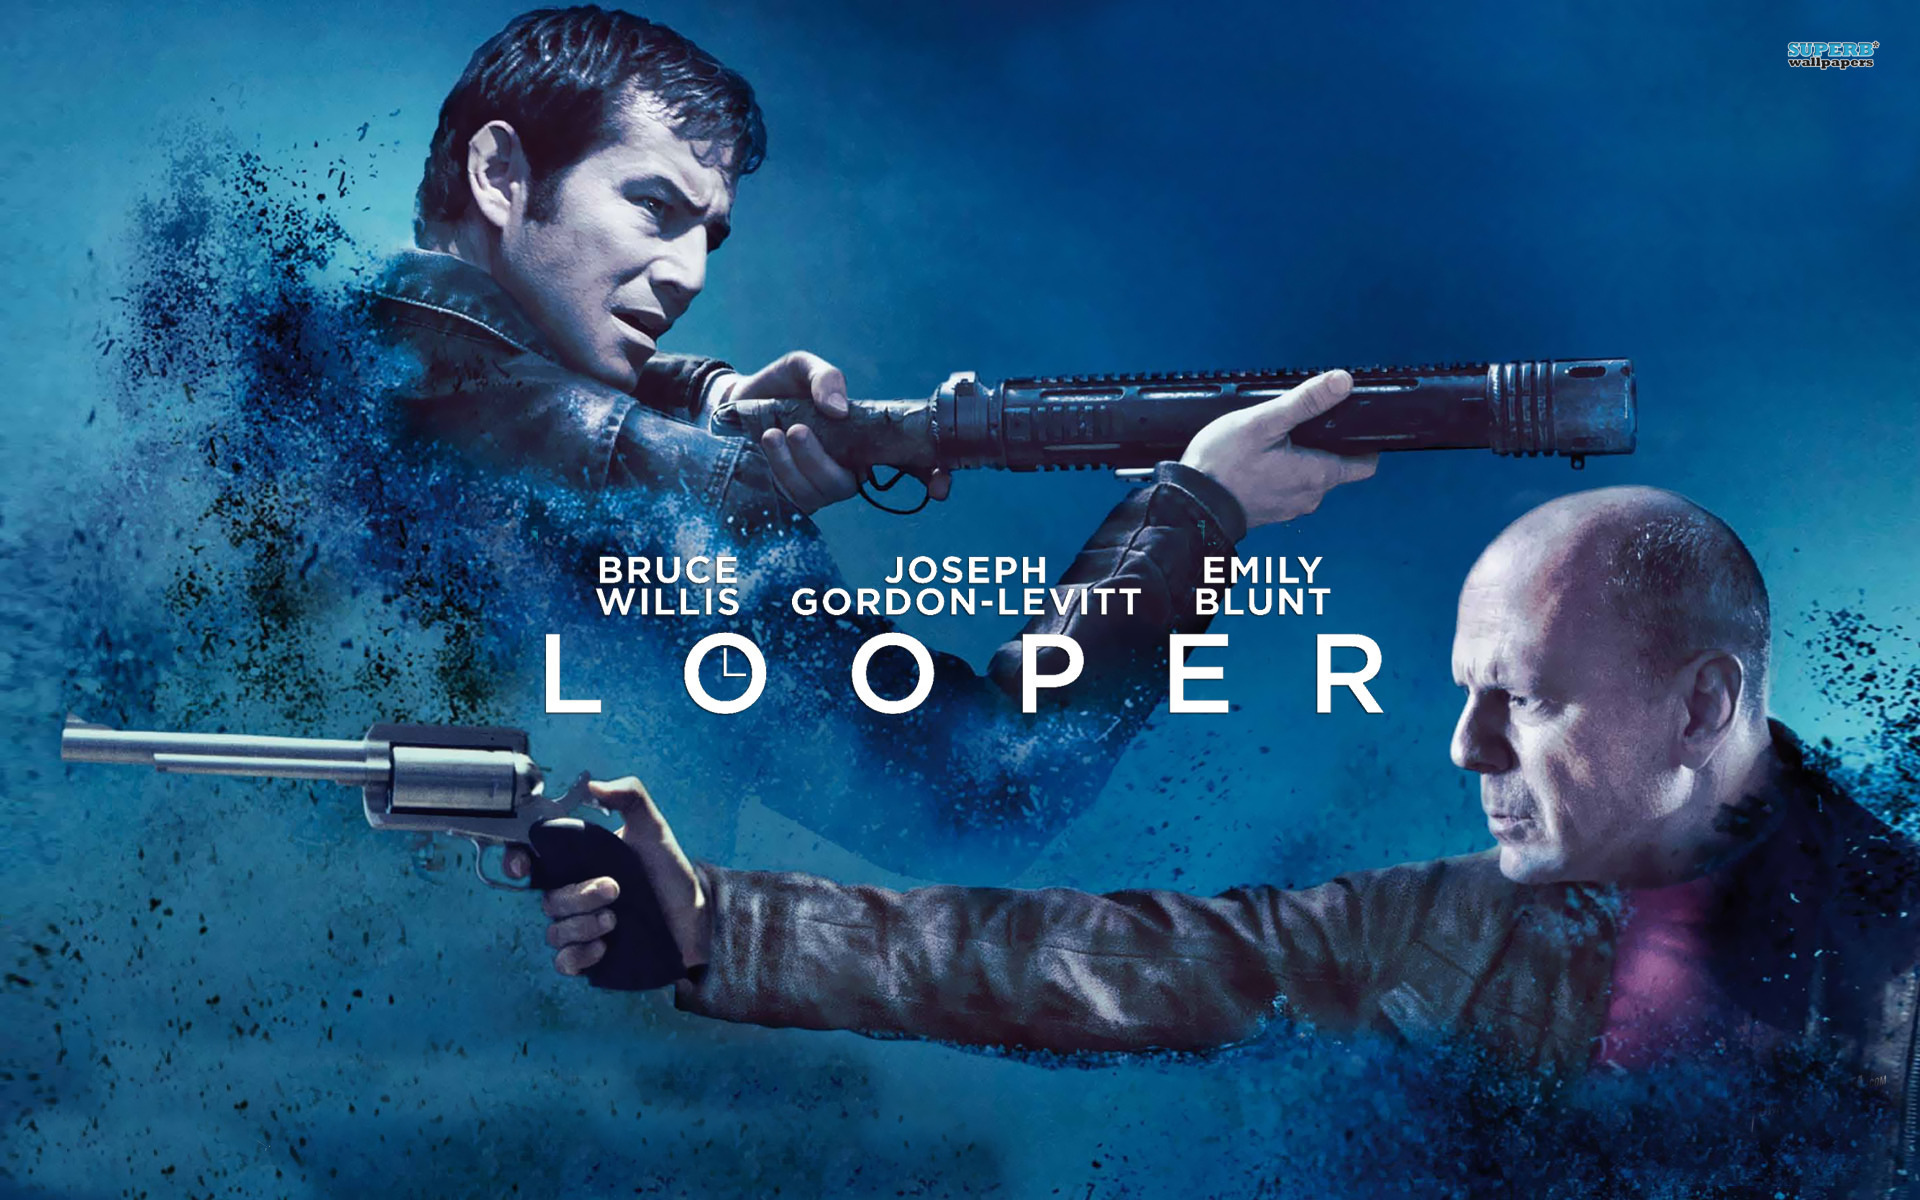 looper-movie-poster-wallpaper-2